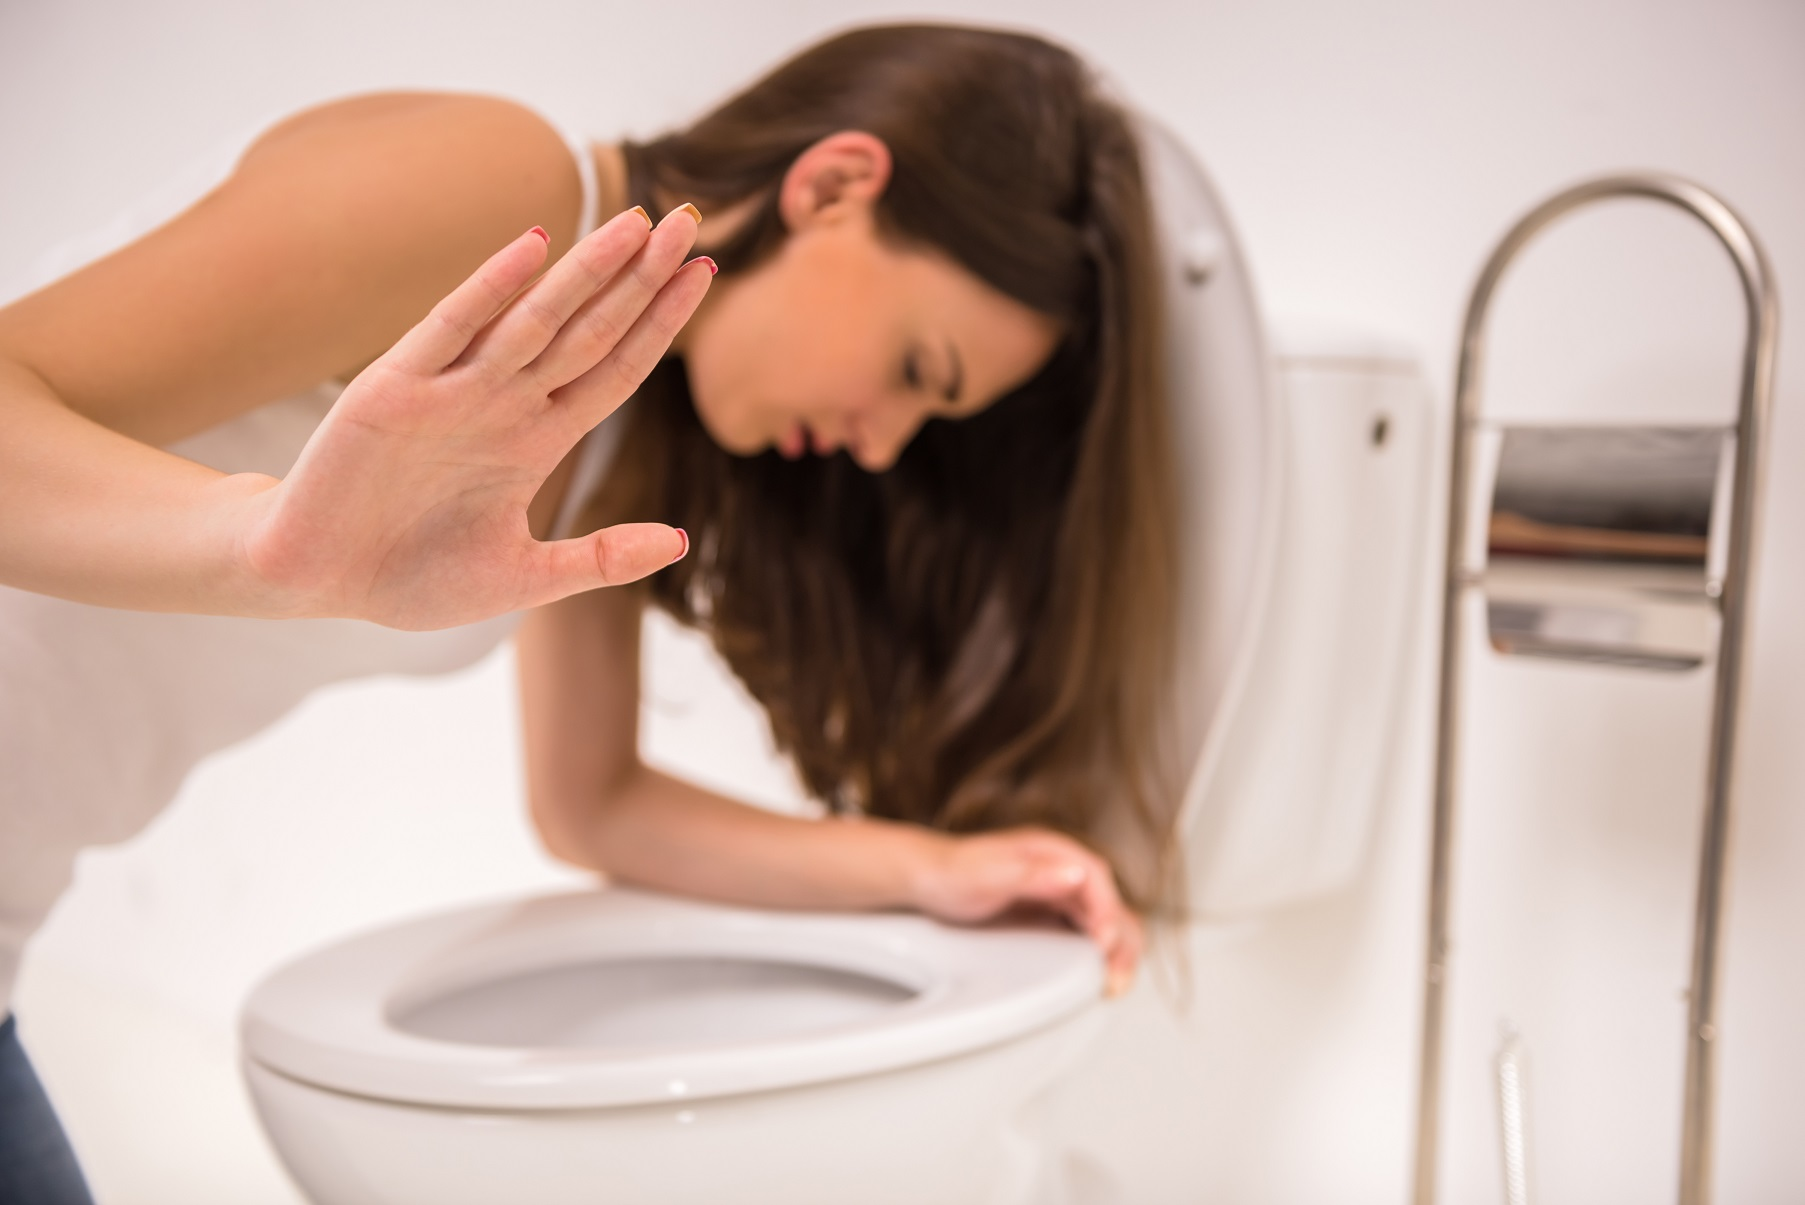 Woman in toilet | The Pulse